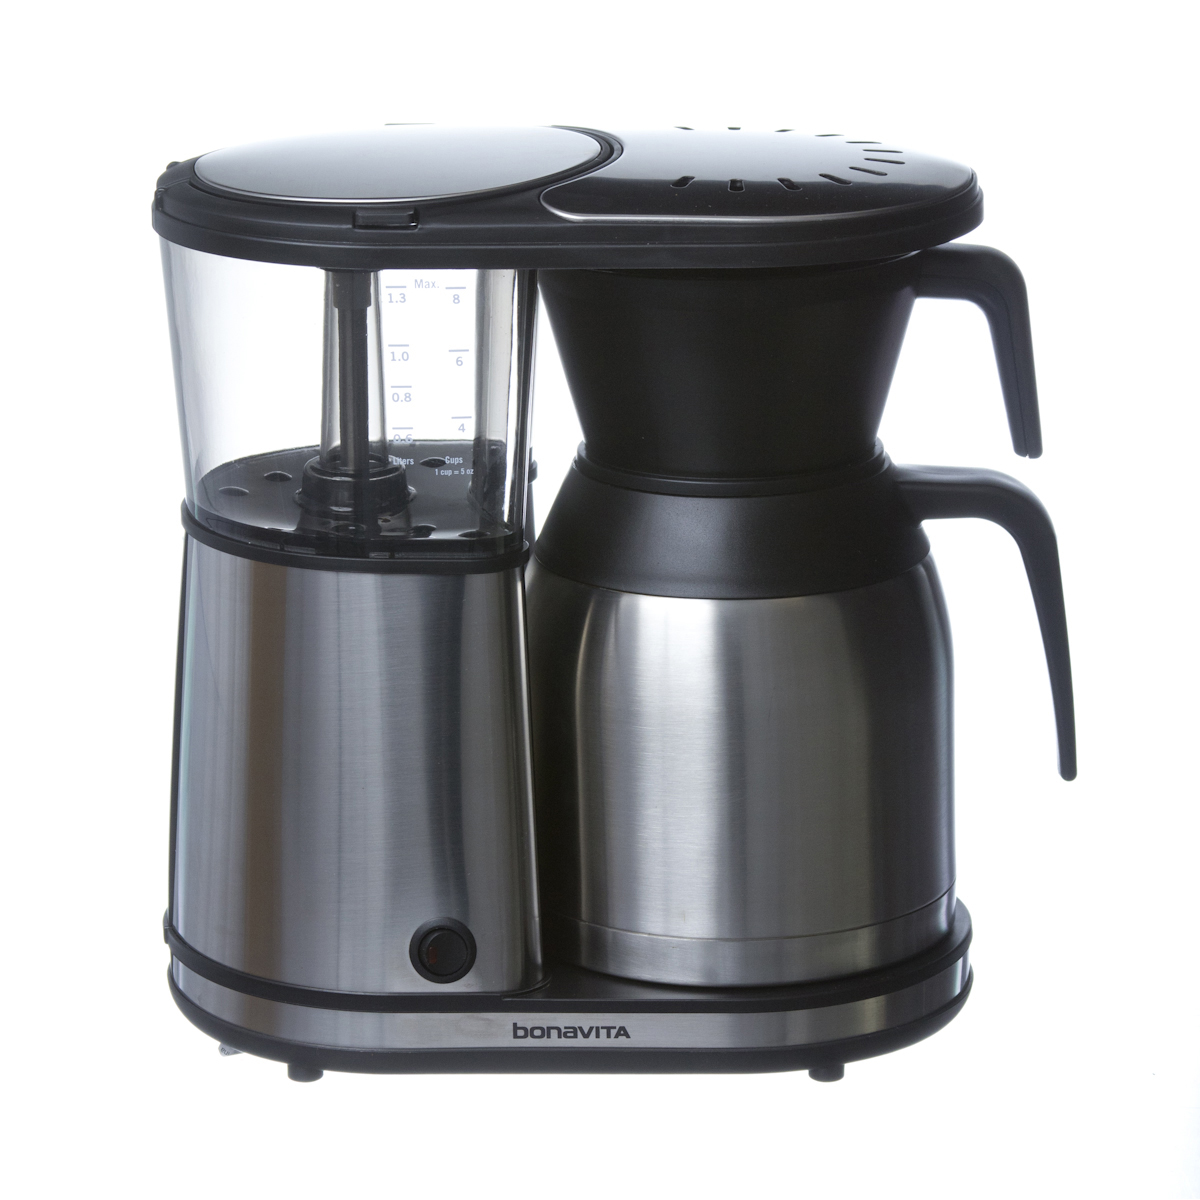 Bonavita Coffee Maker BV1900TS - 8 Cup Automatic Brewer with Thermal Carafe